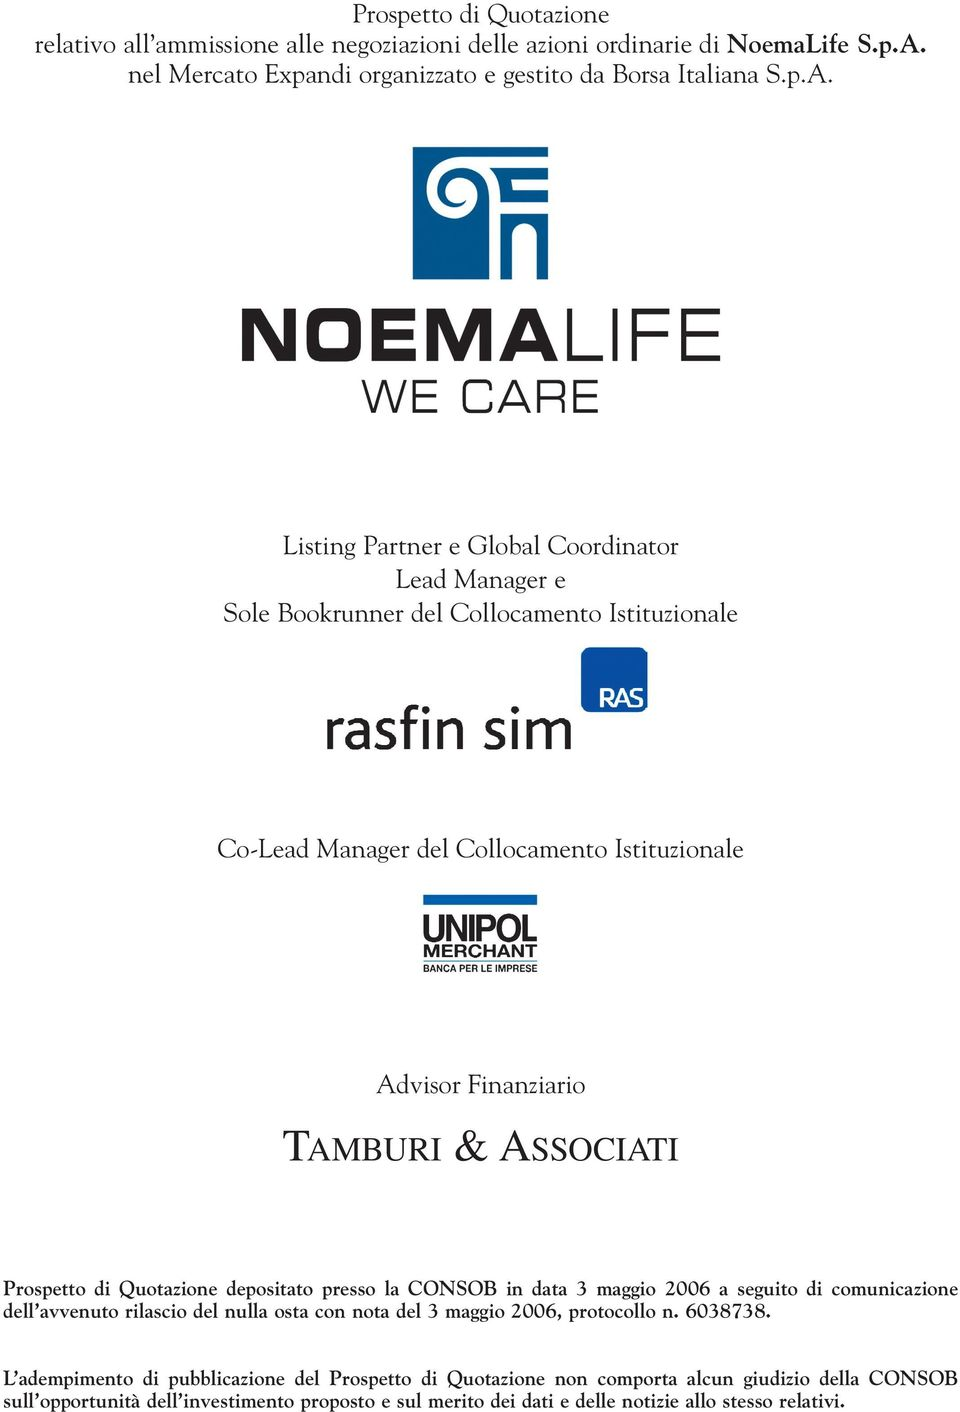 Listing Partner e Global Coordinator Lead Manager e Sole Bookrunner del Collocamento Istituzionale Co-Lead Manager del Collocamento Istituzionale Advisor Finanziario TAMBURI & ASSOCIATI